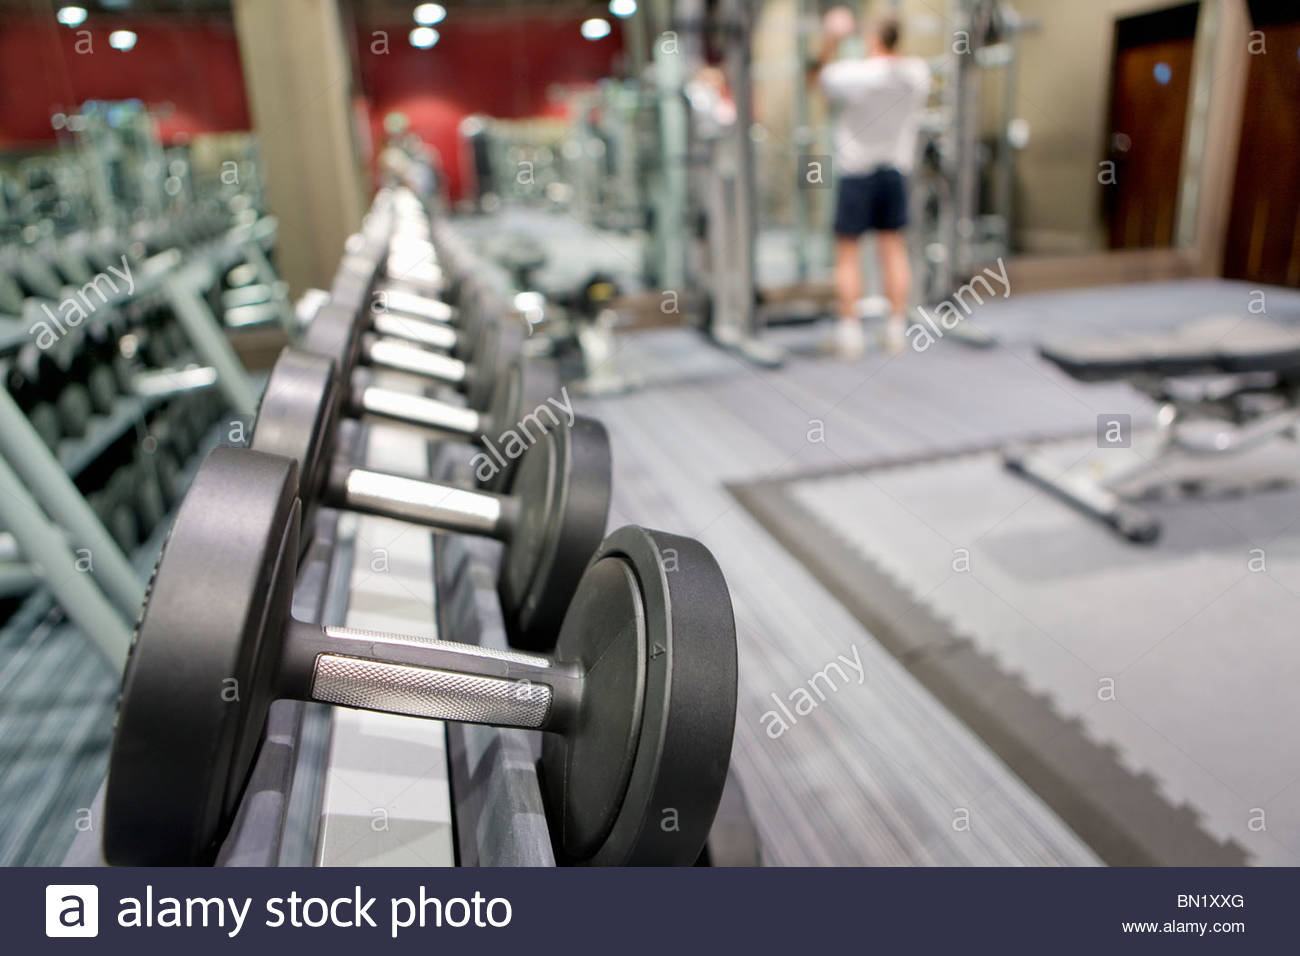 Rack of dumbbells in health club with man lifting weights in background - Stock Image